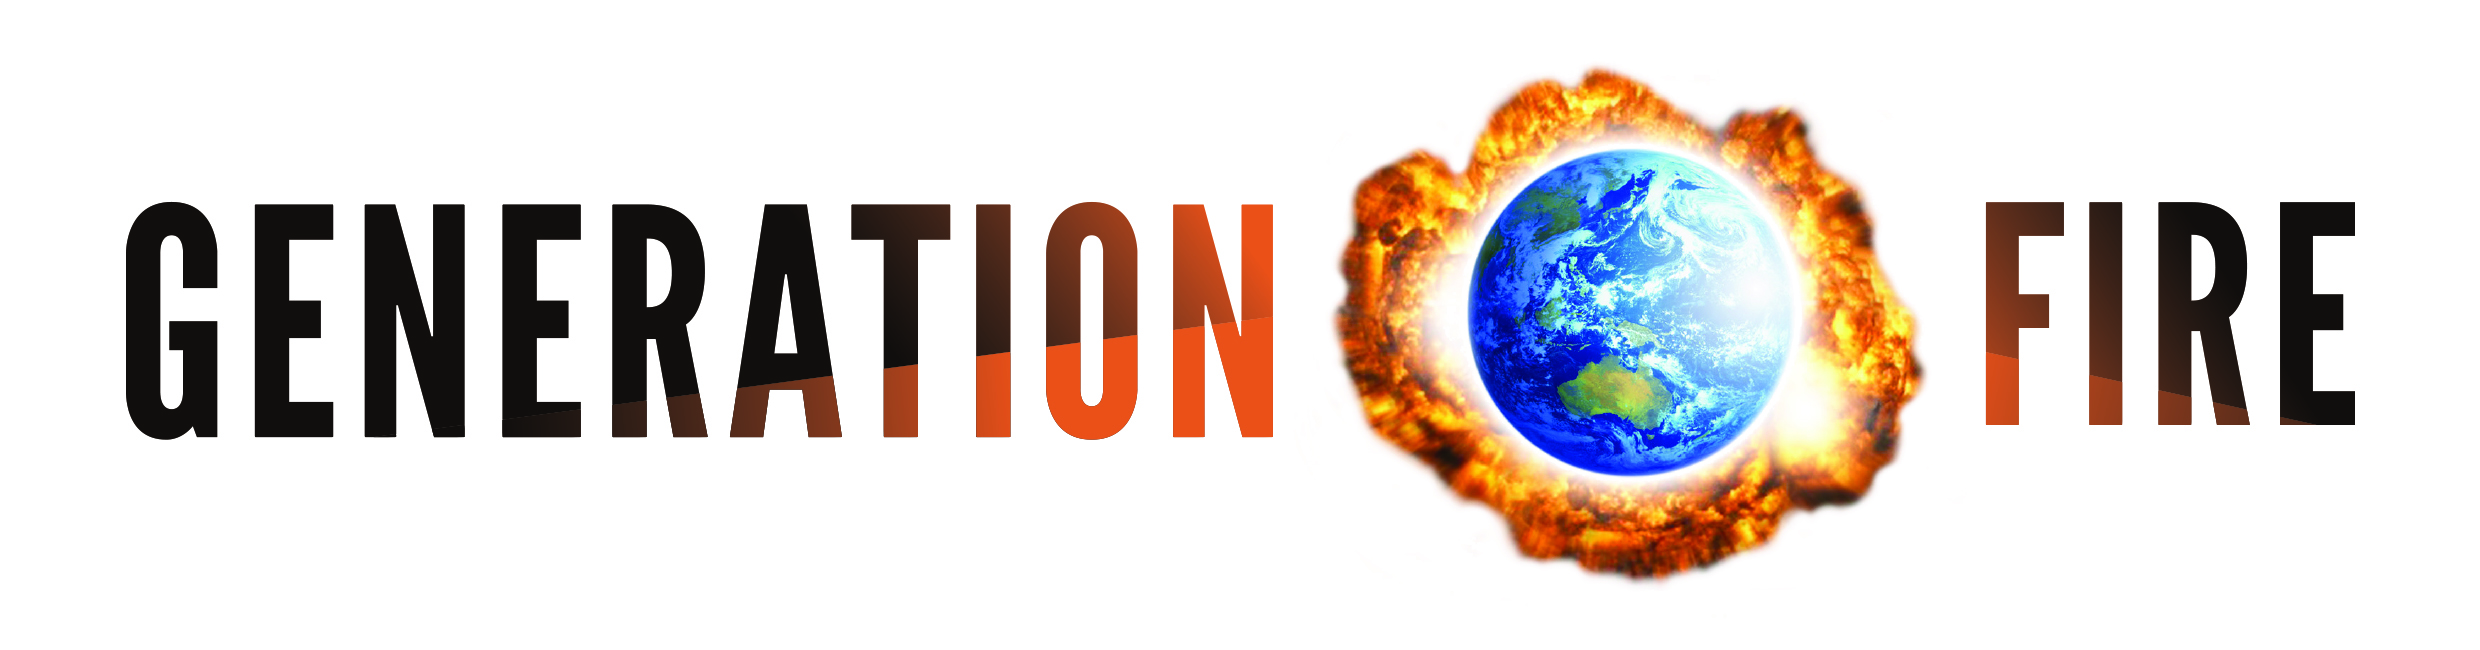 GenerationFire_Logo_Long_Large.jpg